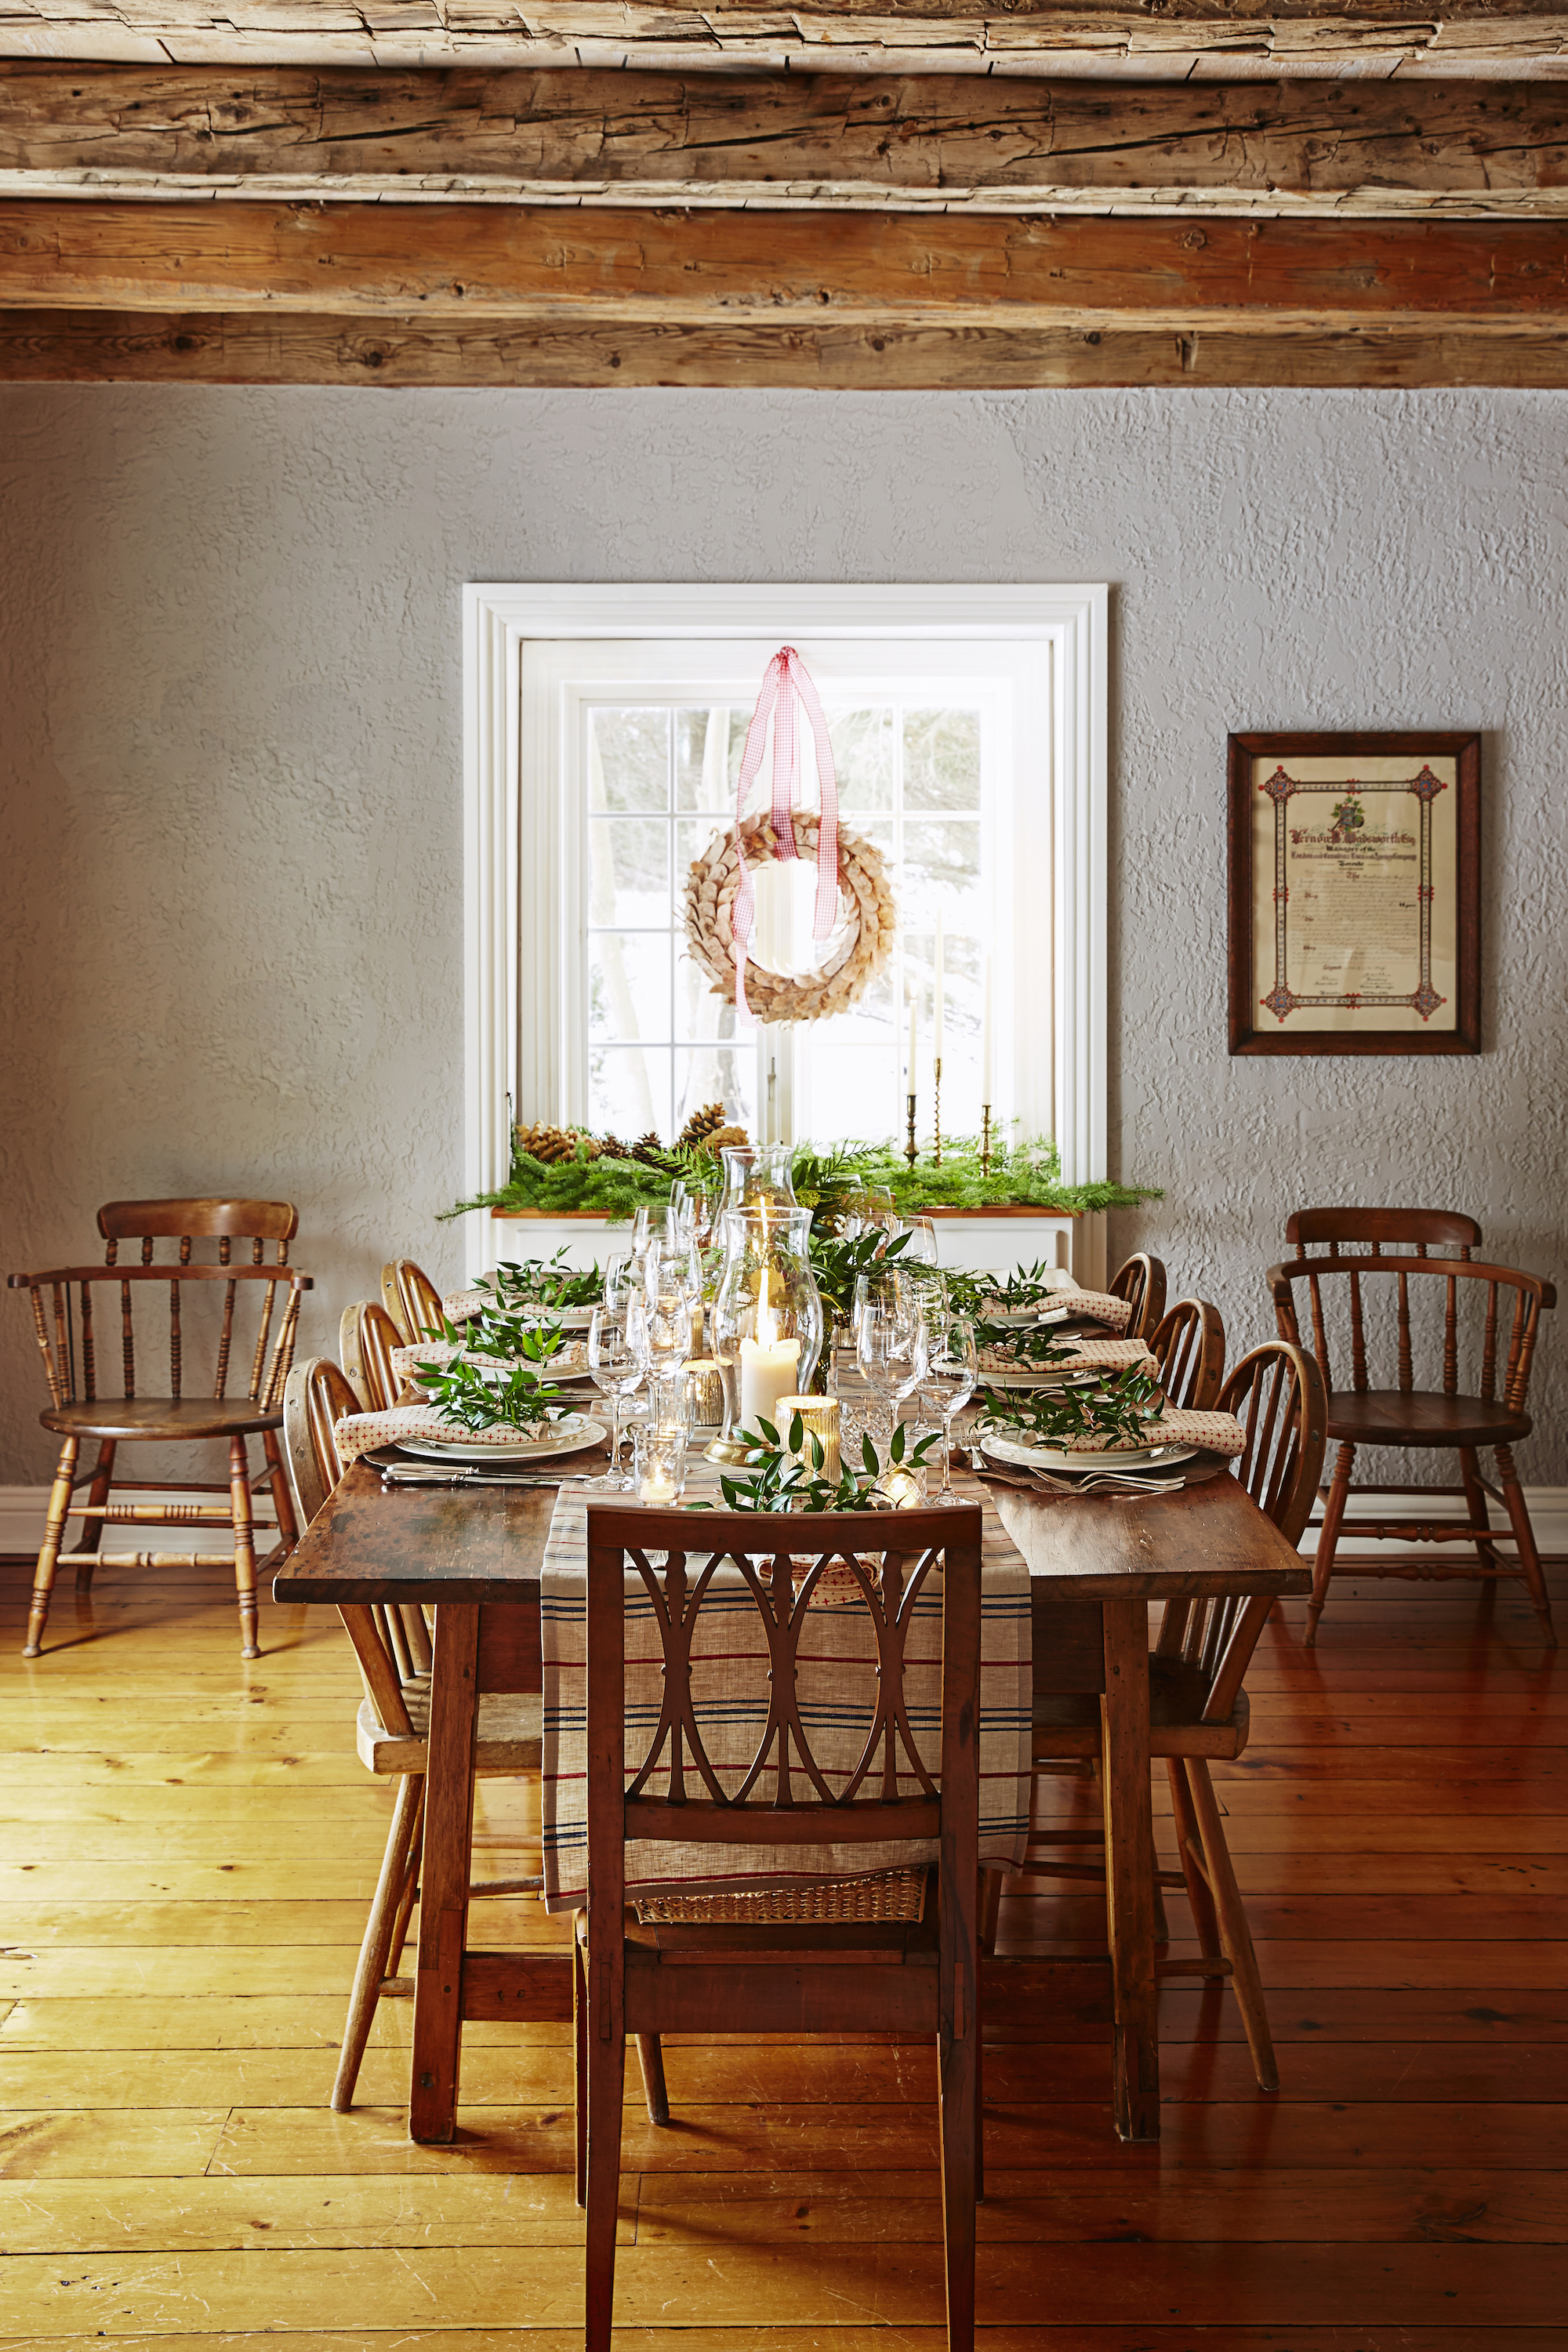 Best of dining room table decoration for christmas light of dining room - Dining room table settings ...